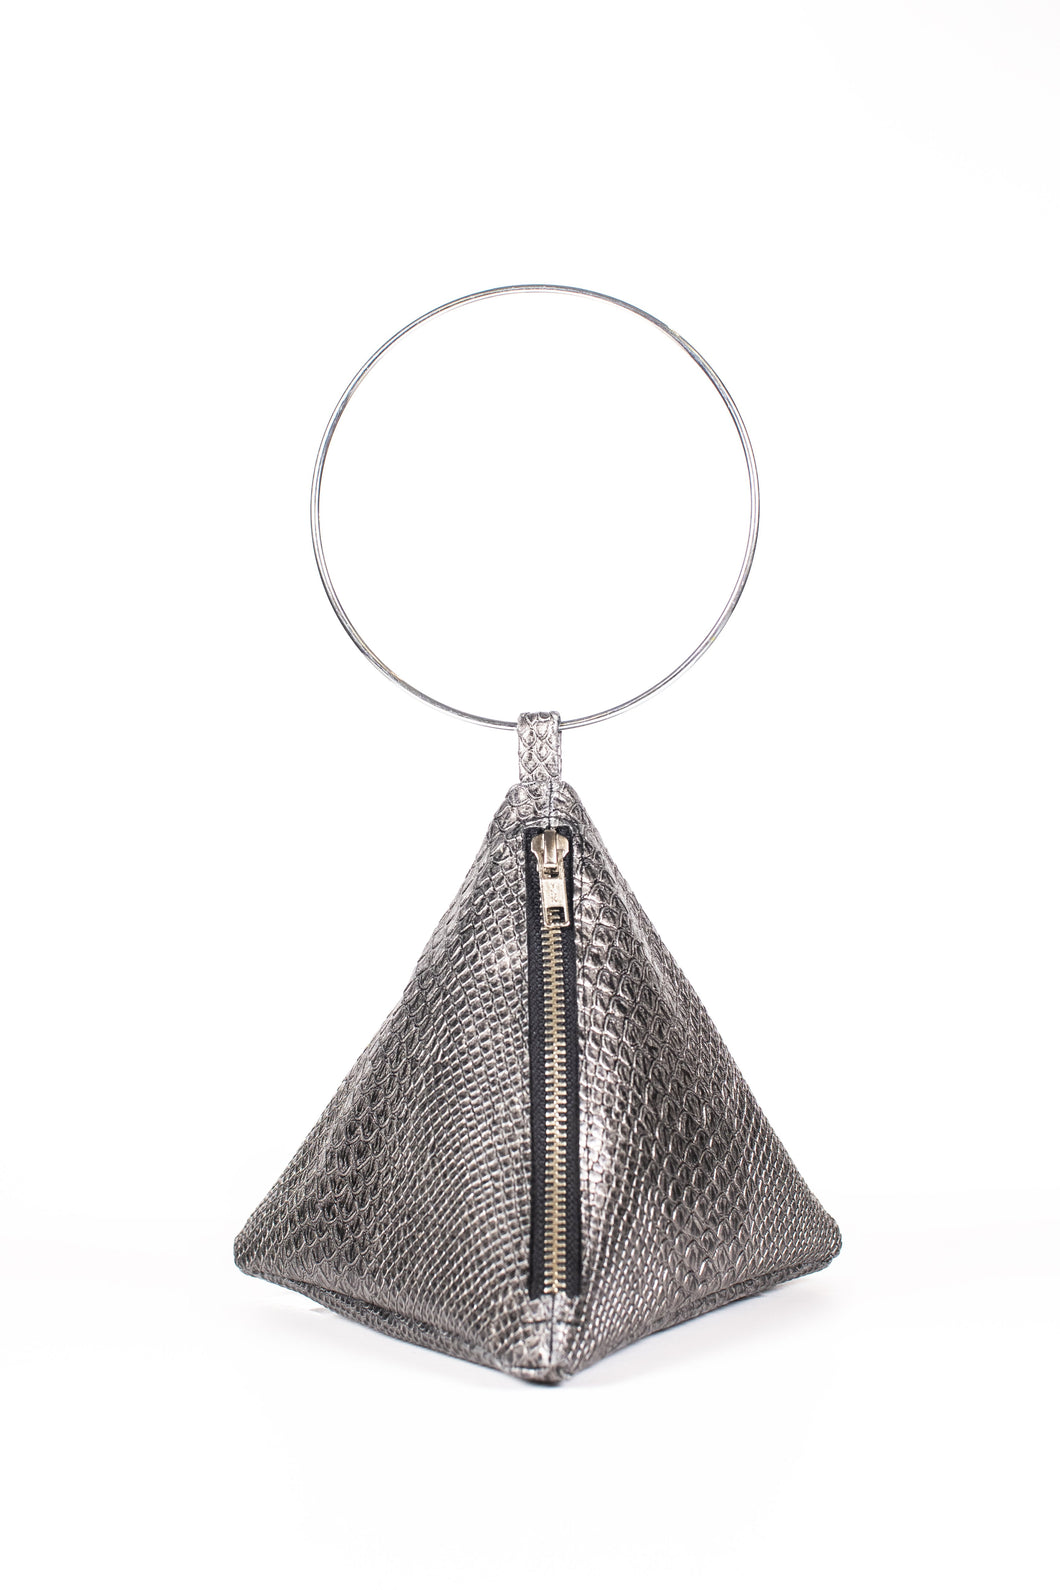 PYRAMID BAG IN METALLIC SNAKE SKIN WITH CIRCLE METAL HANDLE